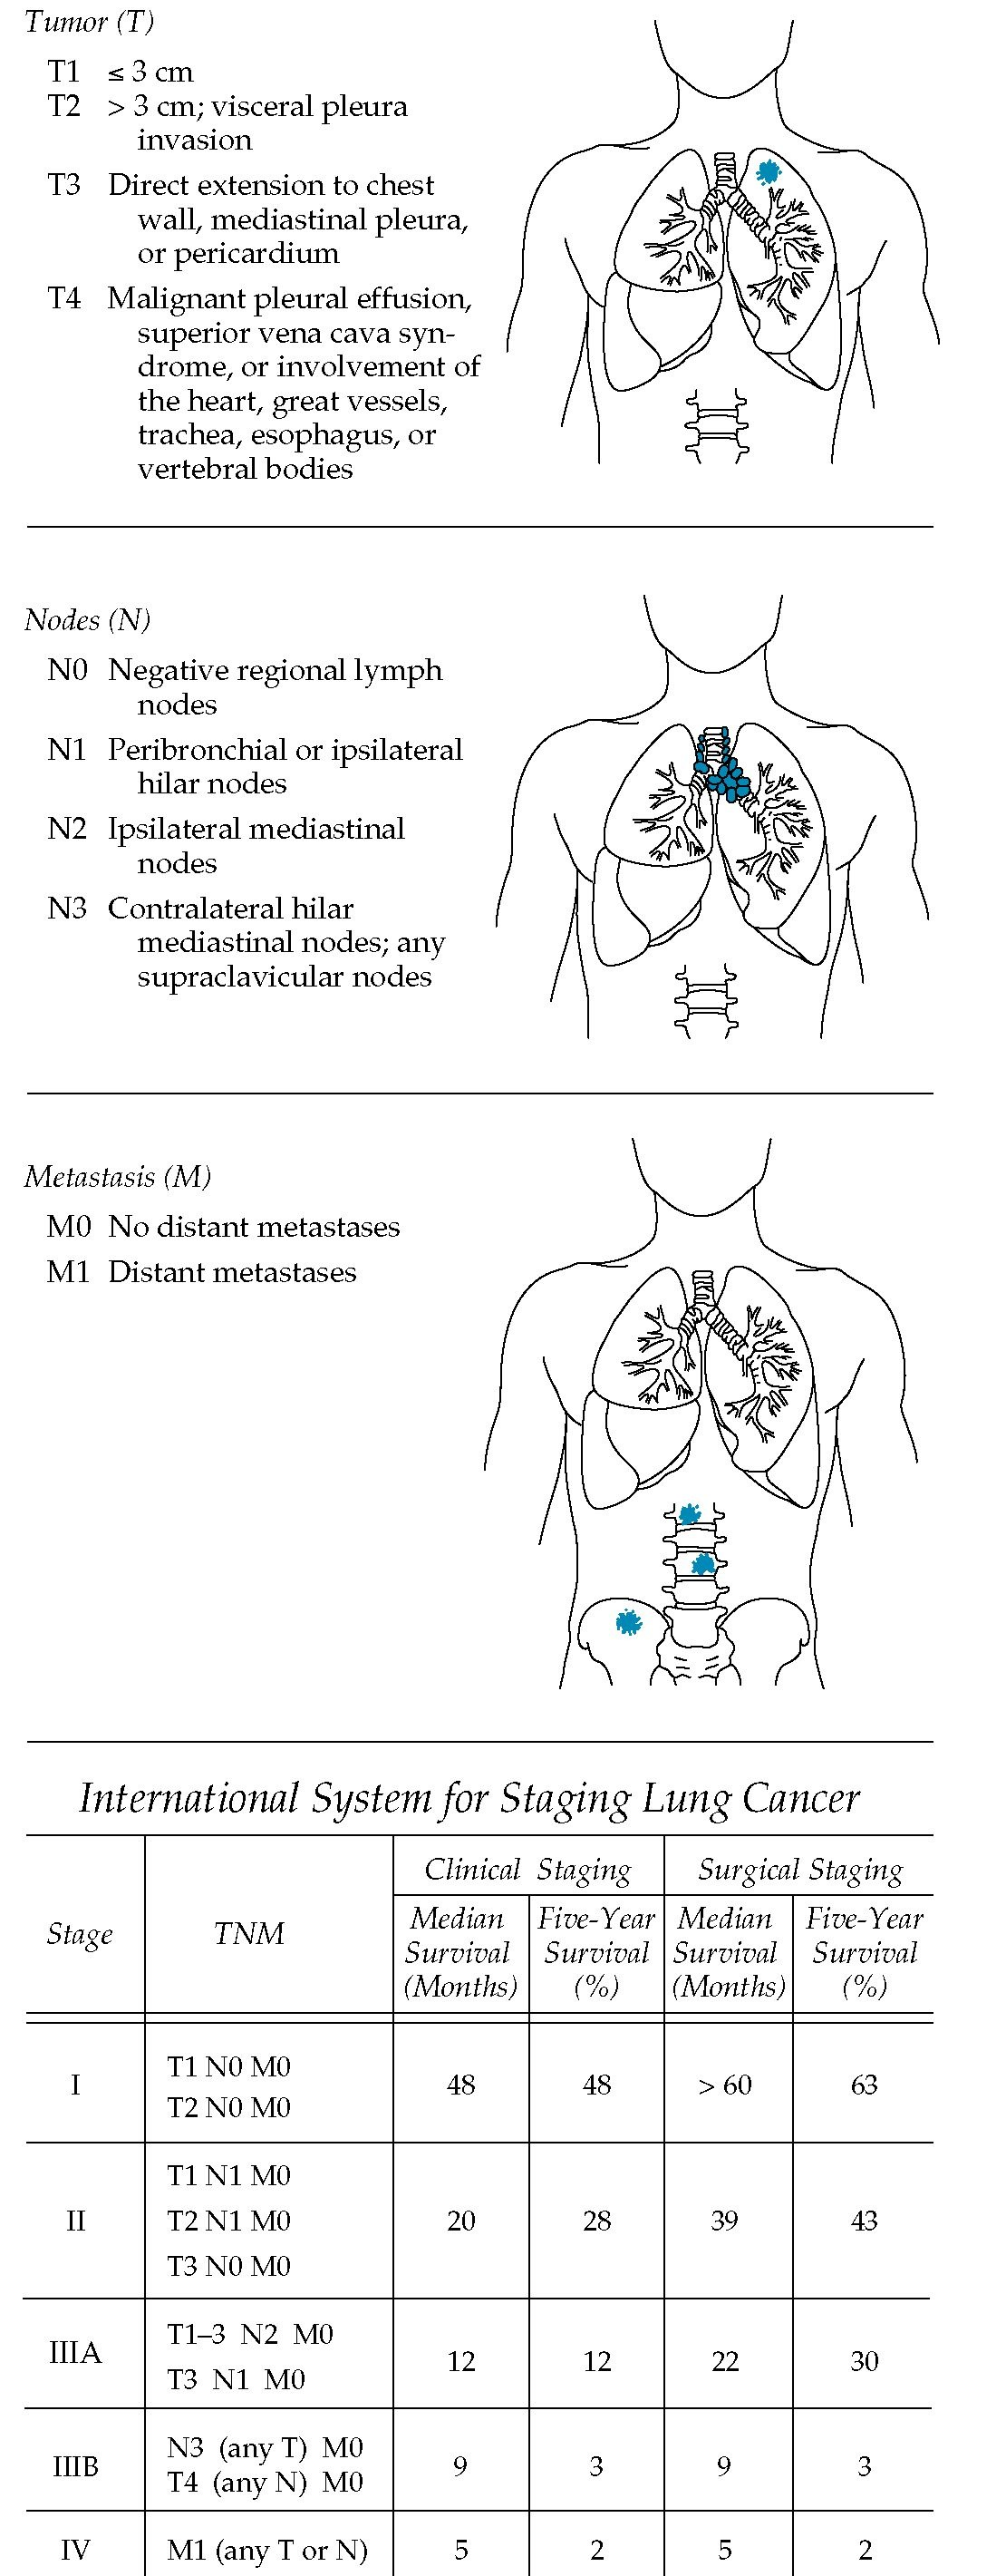 An international TNM four-stage system is used in the clinical and surgical evaluation of lung cancer. Definitions of TNM categories are simplified.